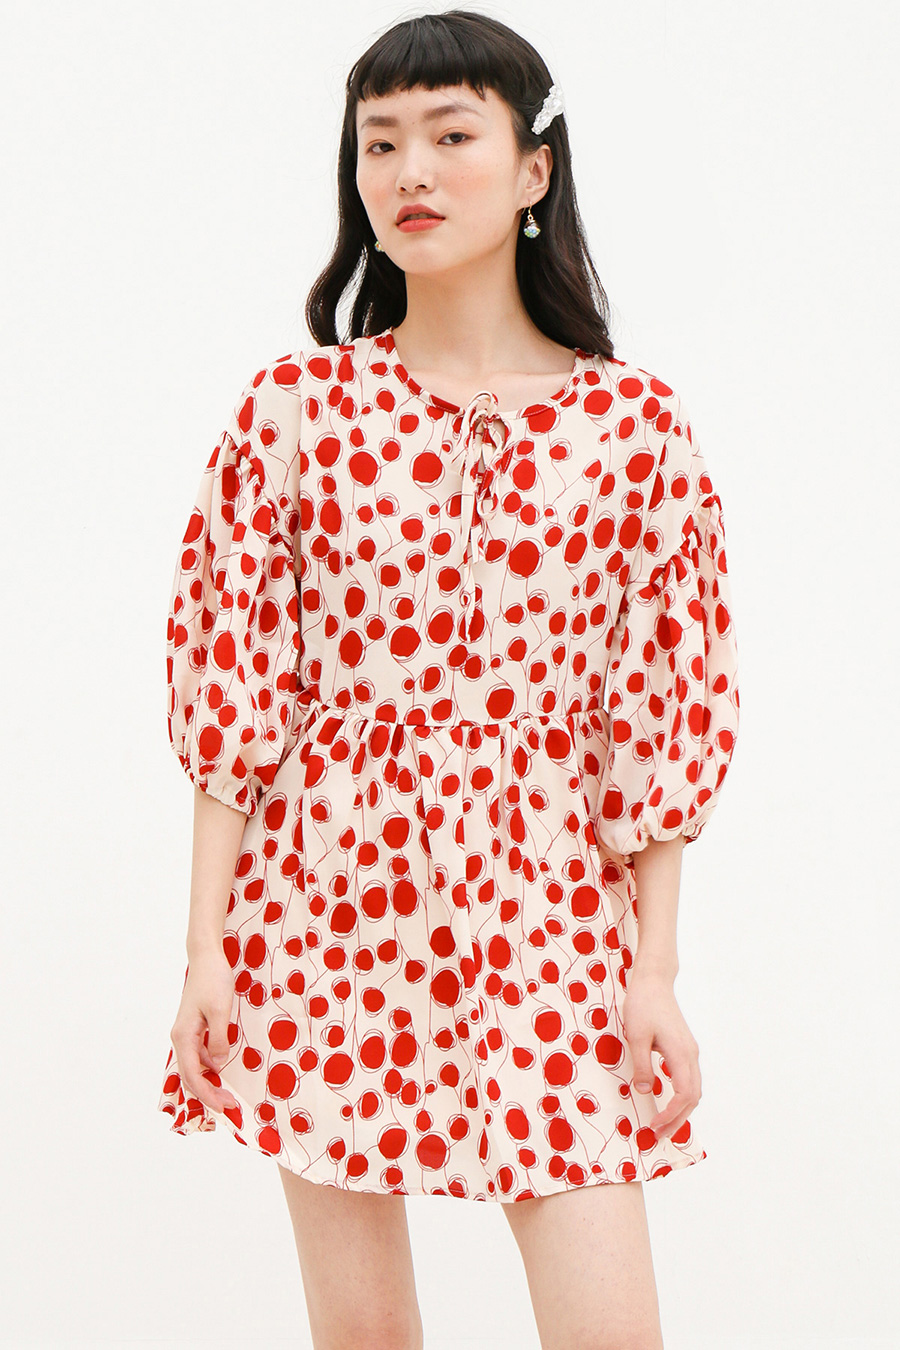 LECLAIR DRESS - RED CELLS